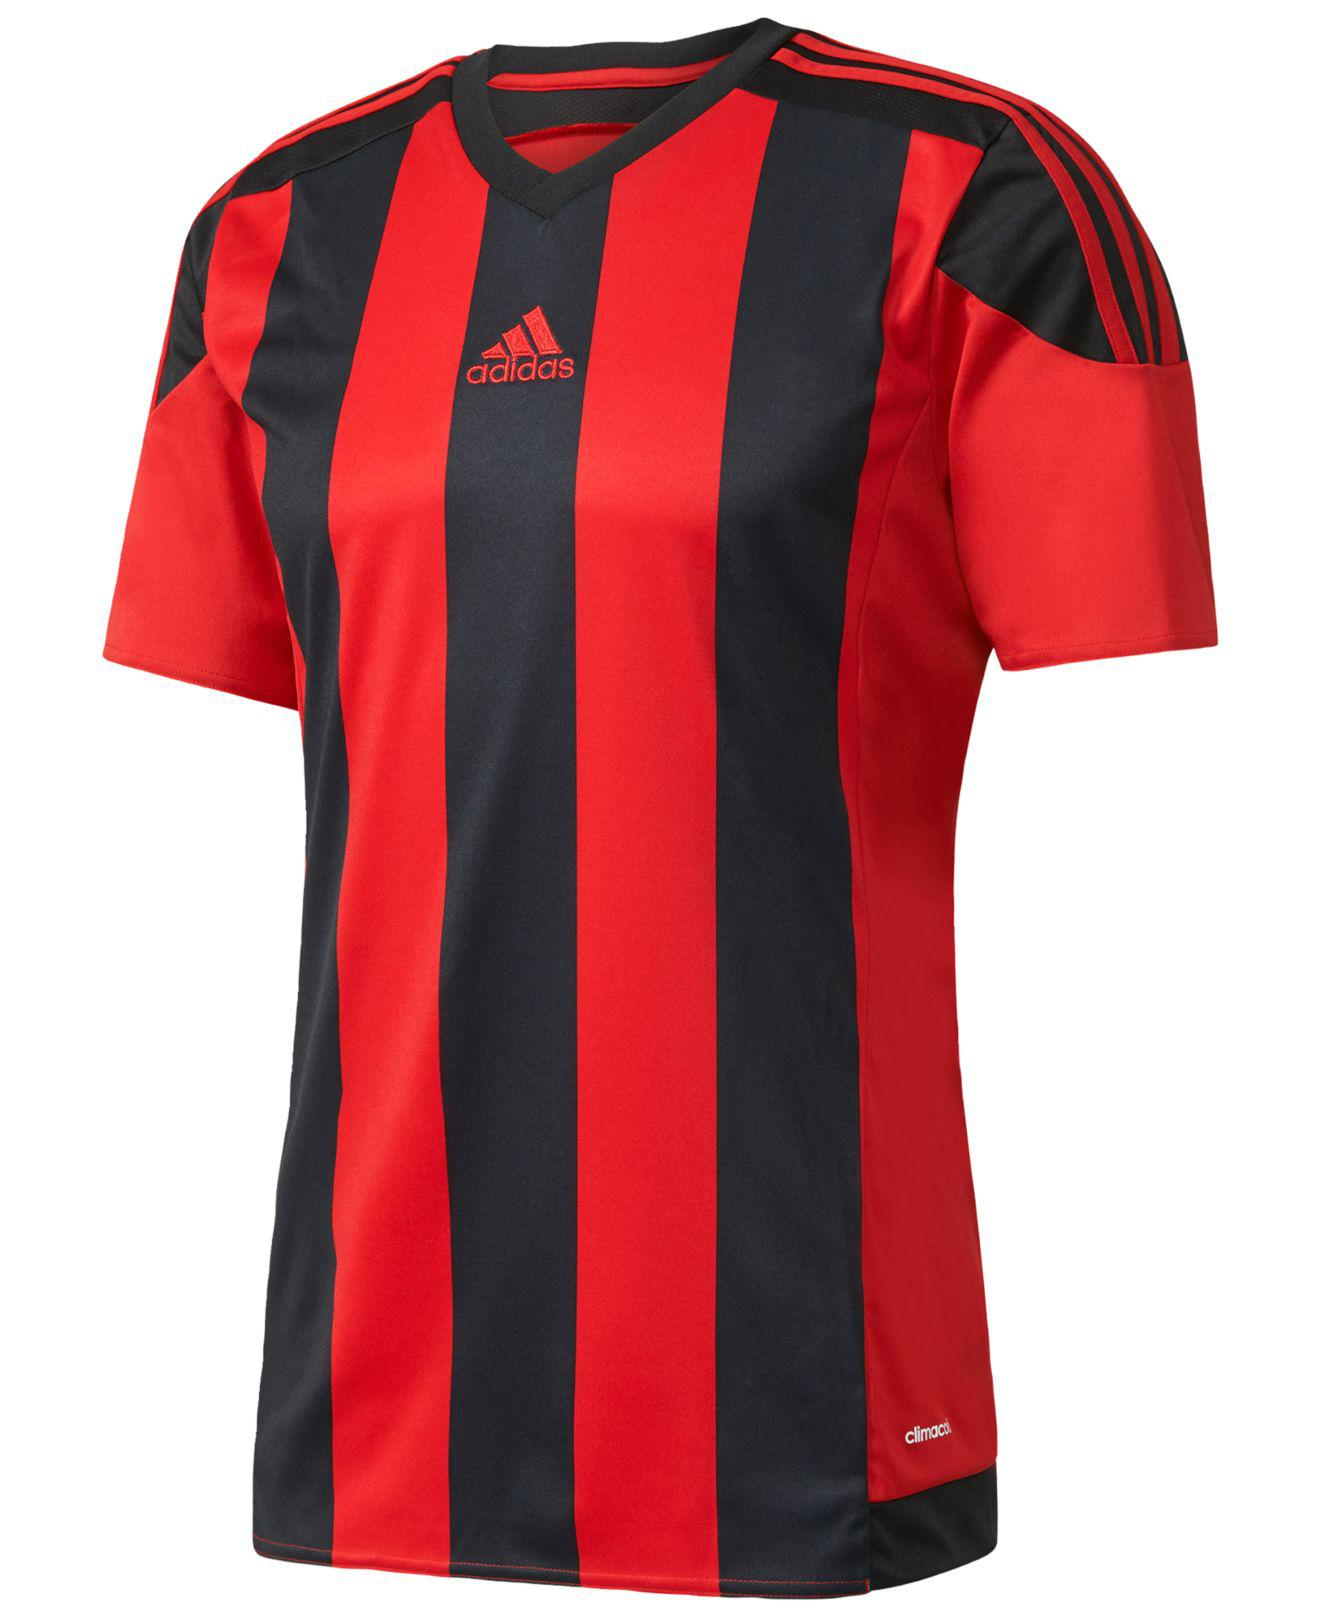 adidas Synthetic Climacool® Striped Soccer Jersey in Red/Black ...